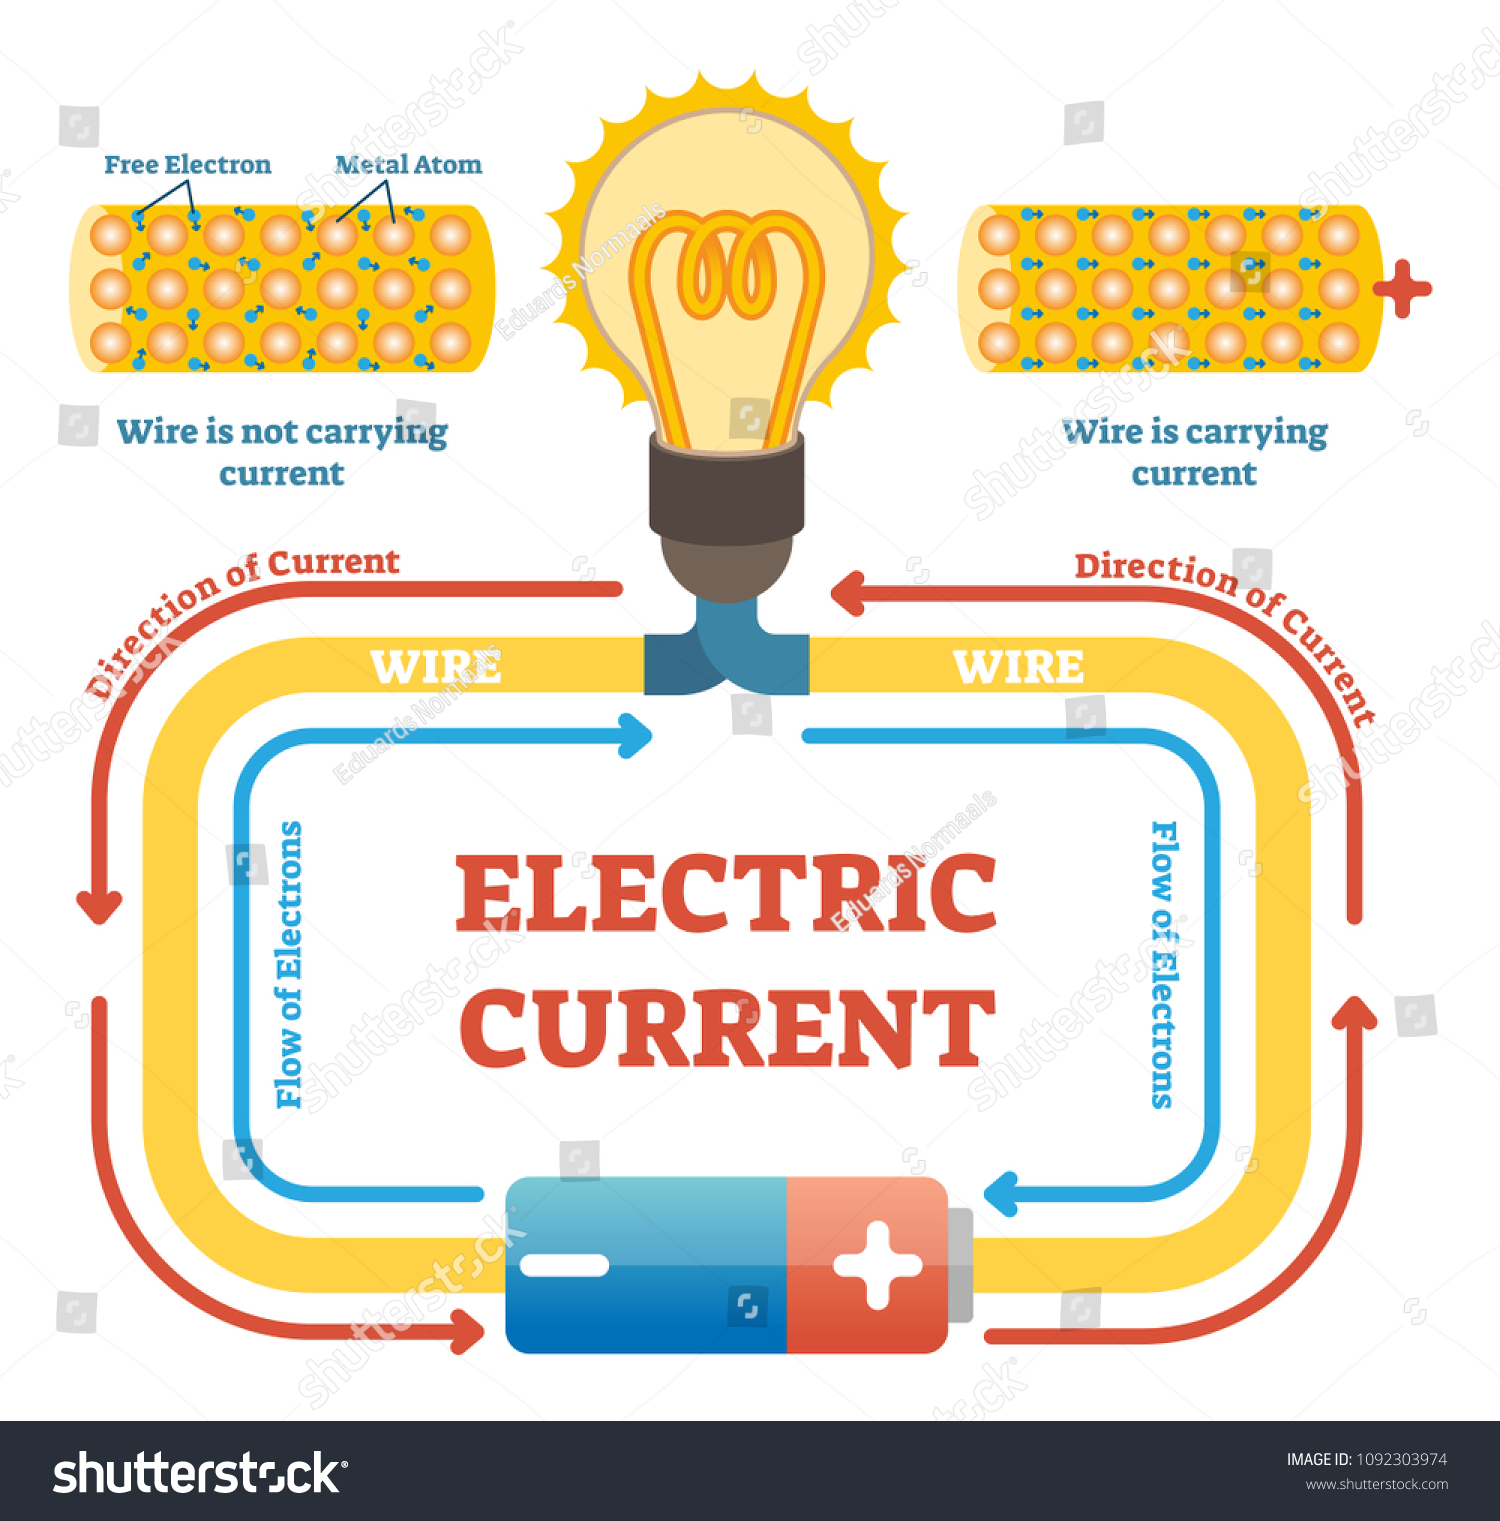 Electric Current Concept Example Vector Illustration Stock Of Electronic Circuit Design Electrical Diagram With Light Bulb And Energy Source